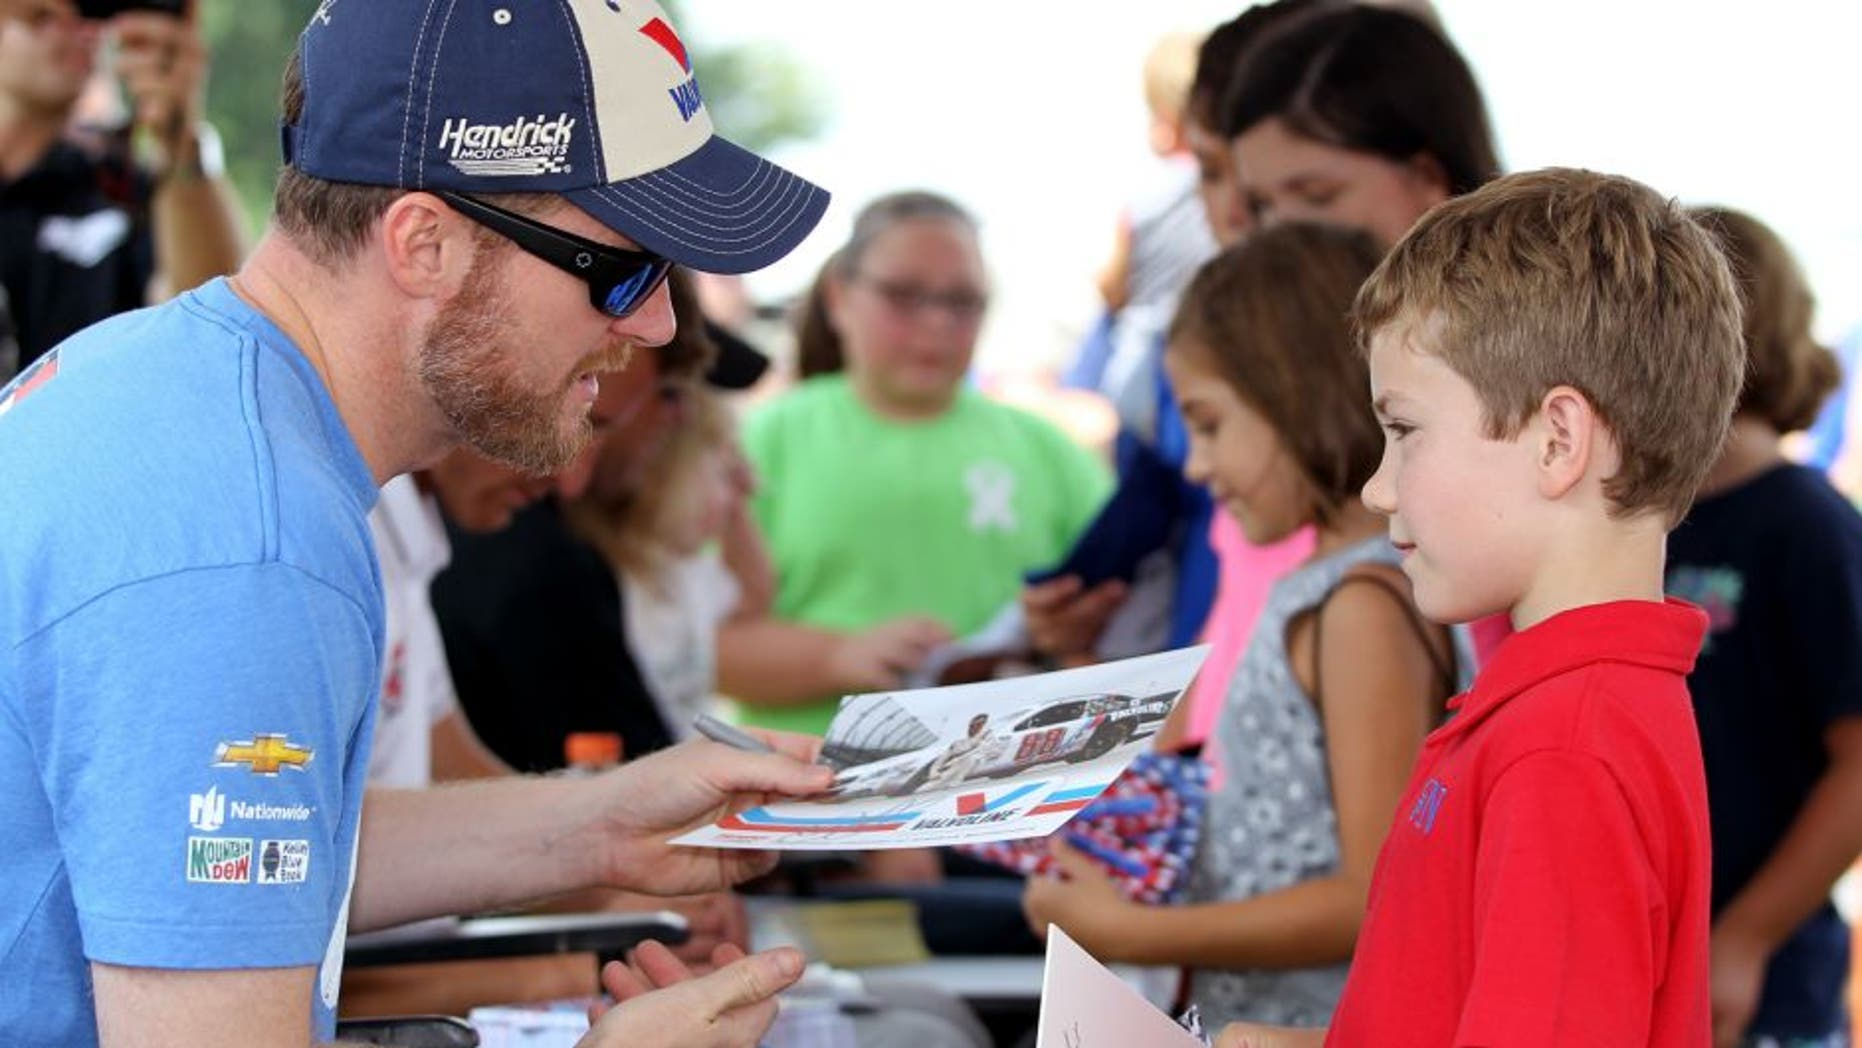 DARLINGTON, SC - SEPTEMBER 05: Dale Earnhardt Jr., driver of the #88 Valvoline Chevrolet, left, signs his autograph for young fans at an autgraph session prior to qualifying for the NASCAR Sprint Cup Series Bojangles' Southern 500 at Darlington Raceway on September 5, 2015 in Darlington, South Carolina. (Photo by Kena Krutsinger/Getty Images)